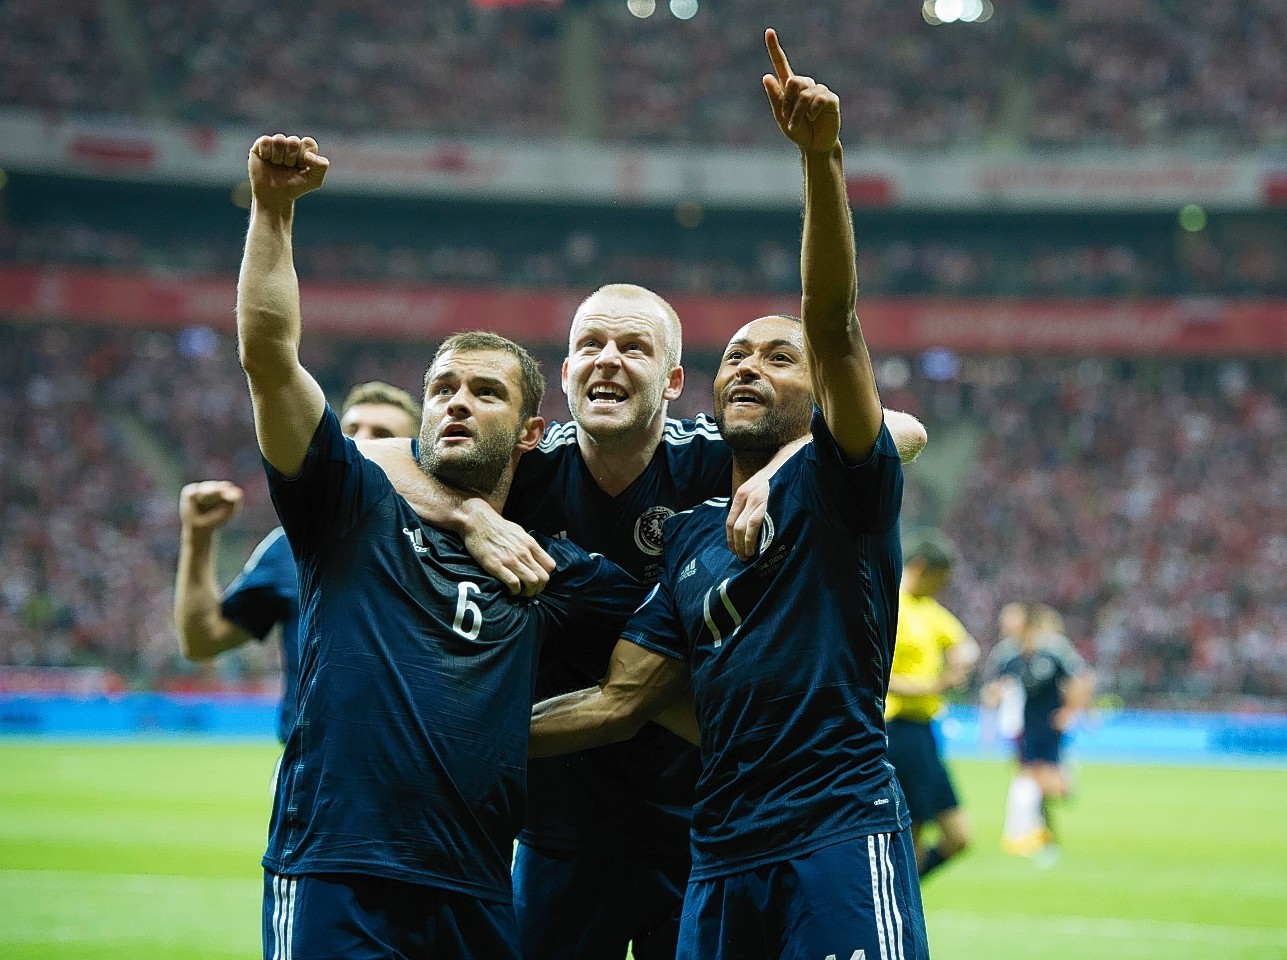 Shaun Maloney, Steven Naismith and Ikechi Anya